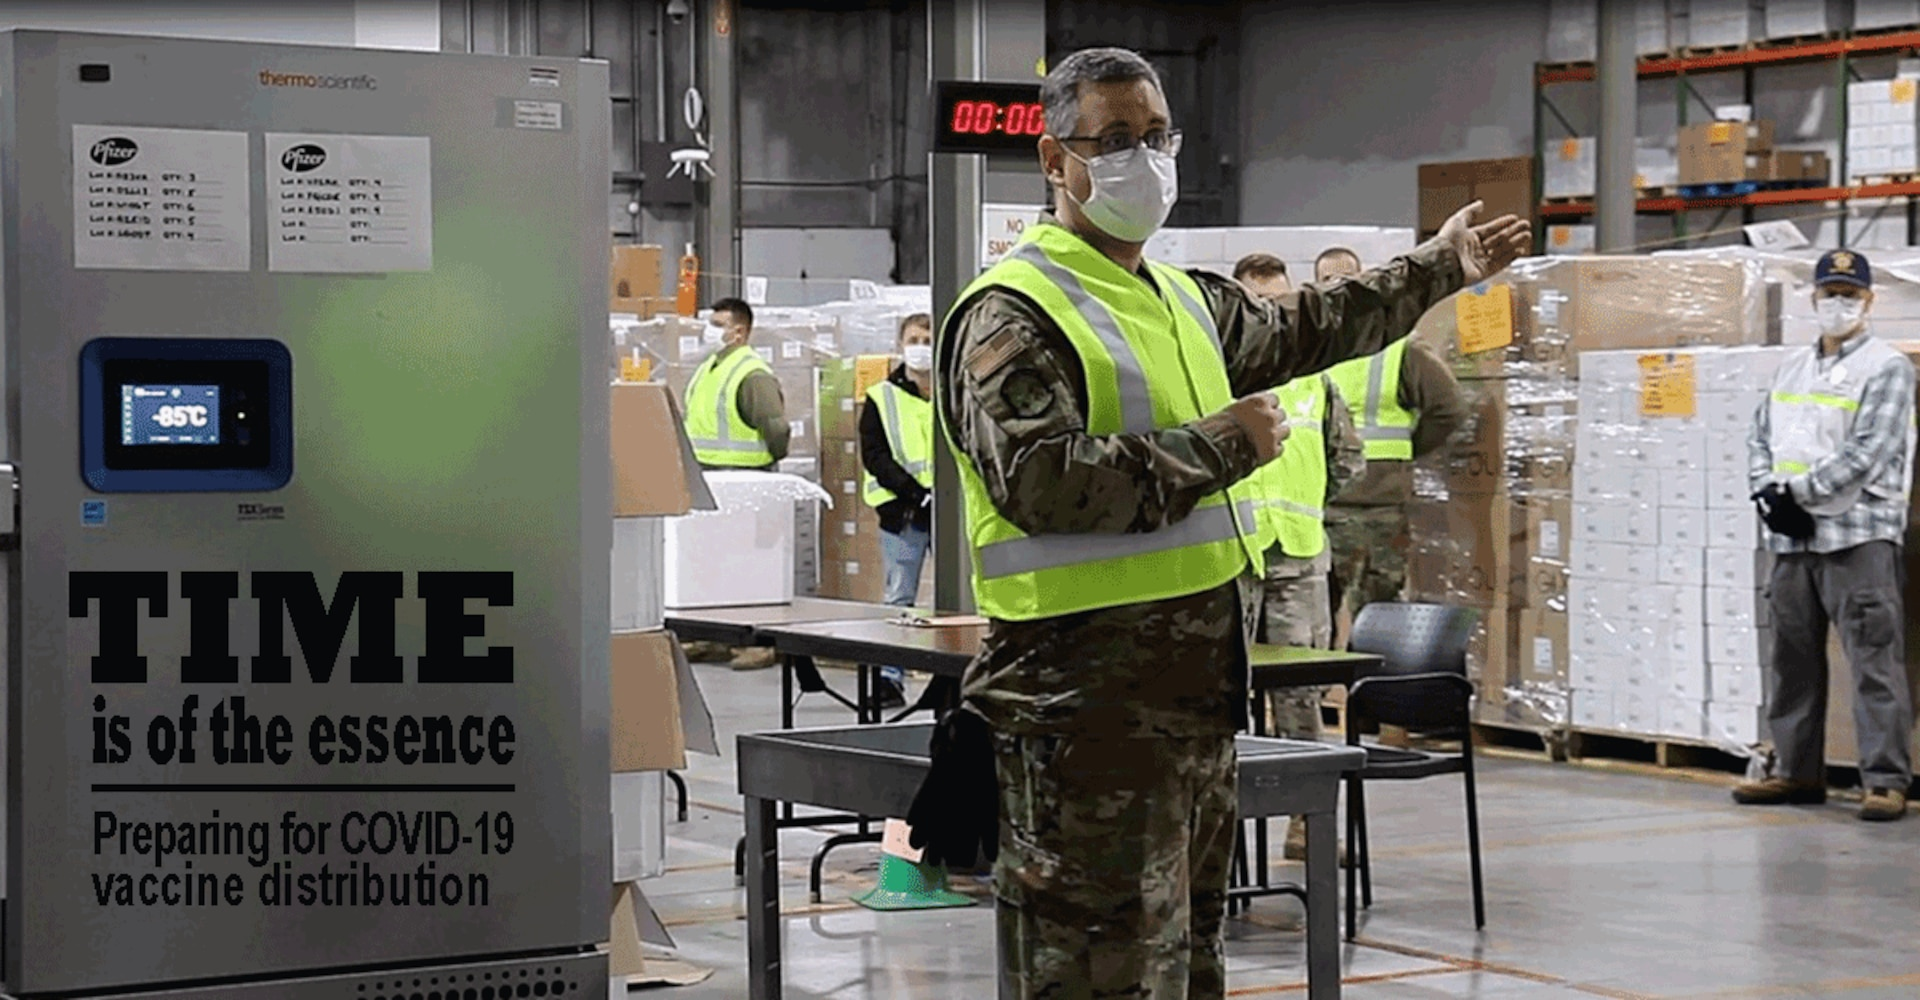 Ohio Air National Guard Senior Master Sgt. Gregory Sprowls explains the process of receiving and repacking COVID-19 vaccines. Sprowls, an air transportation specialist with the 121st Air Refueling Wing in Columbus, Ohio, said his military skills have helped in working with partners from the Ohio Department of Health to develop the logistics plan for the vaccines the state will soon have at its Receive, Store and Stage warehouse.